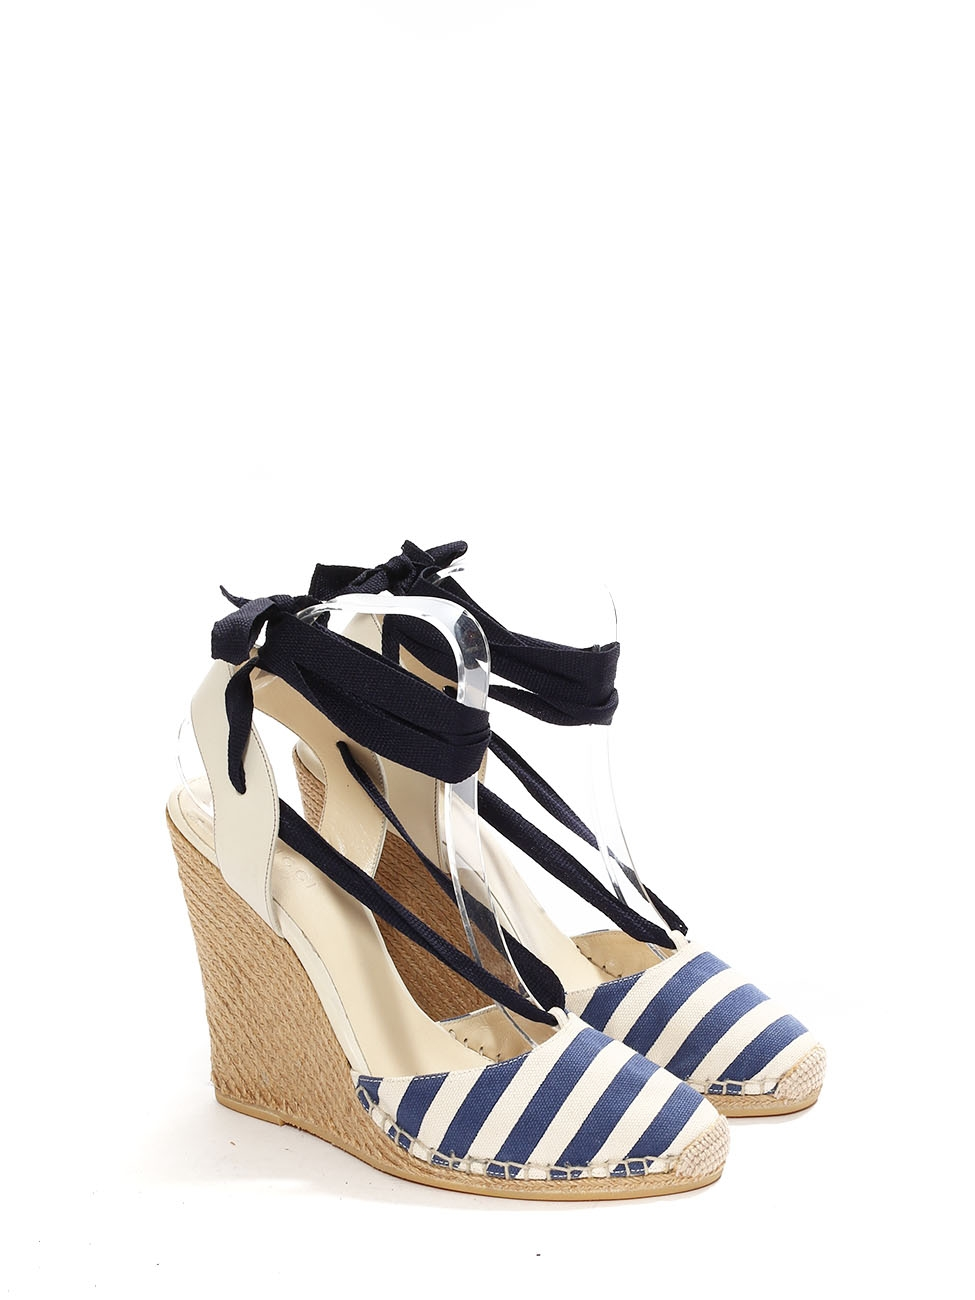 a2d52d97ea ... Espadrilles Wedge Sandals Retail 450 Size 38 5. Louise Paris Gucci  Ivory White And Navy Blue Striped Canvas